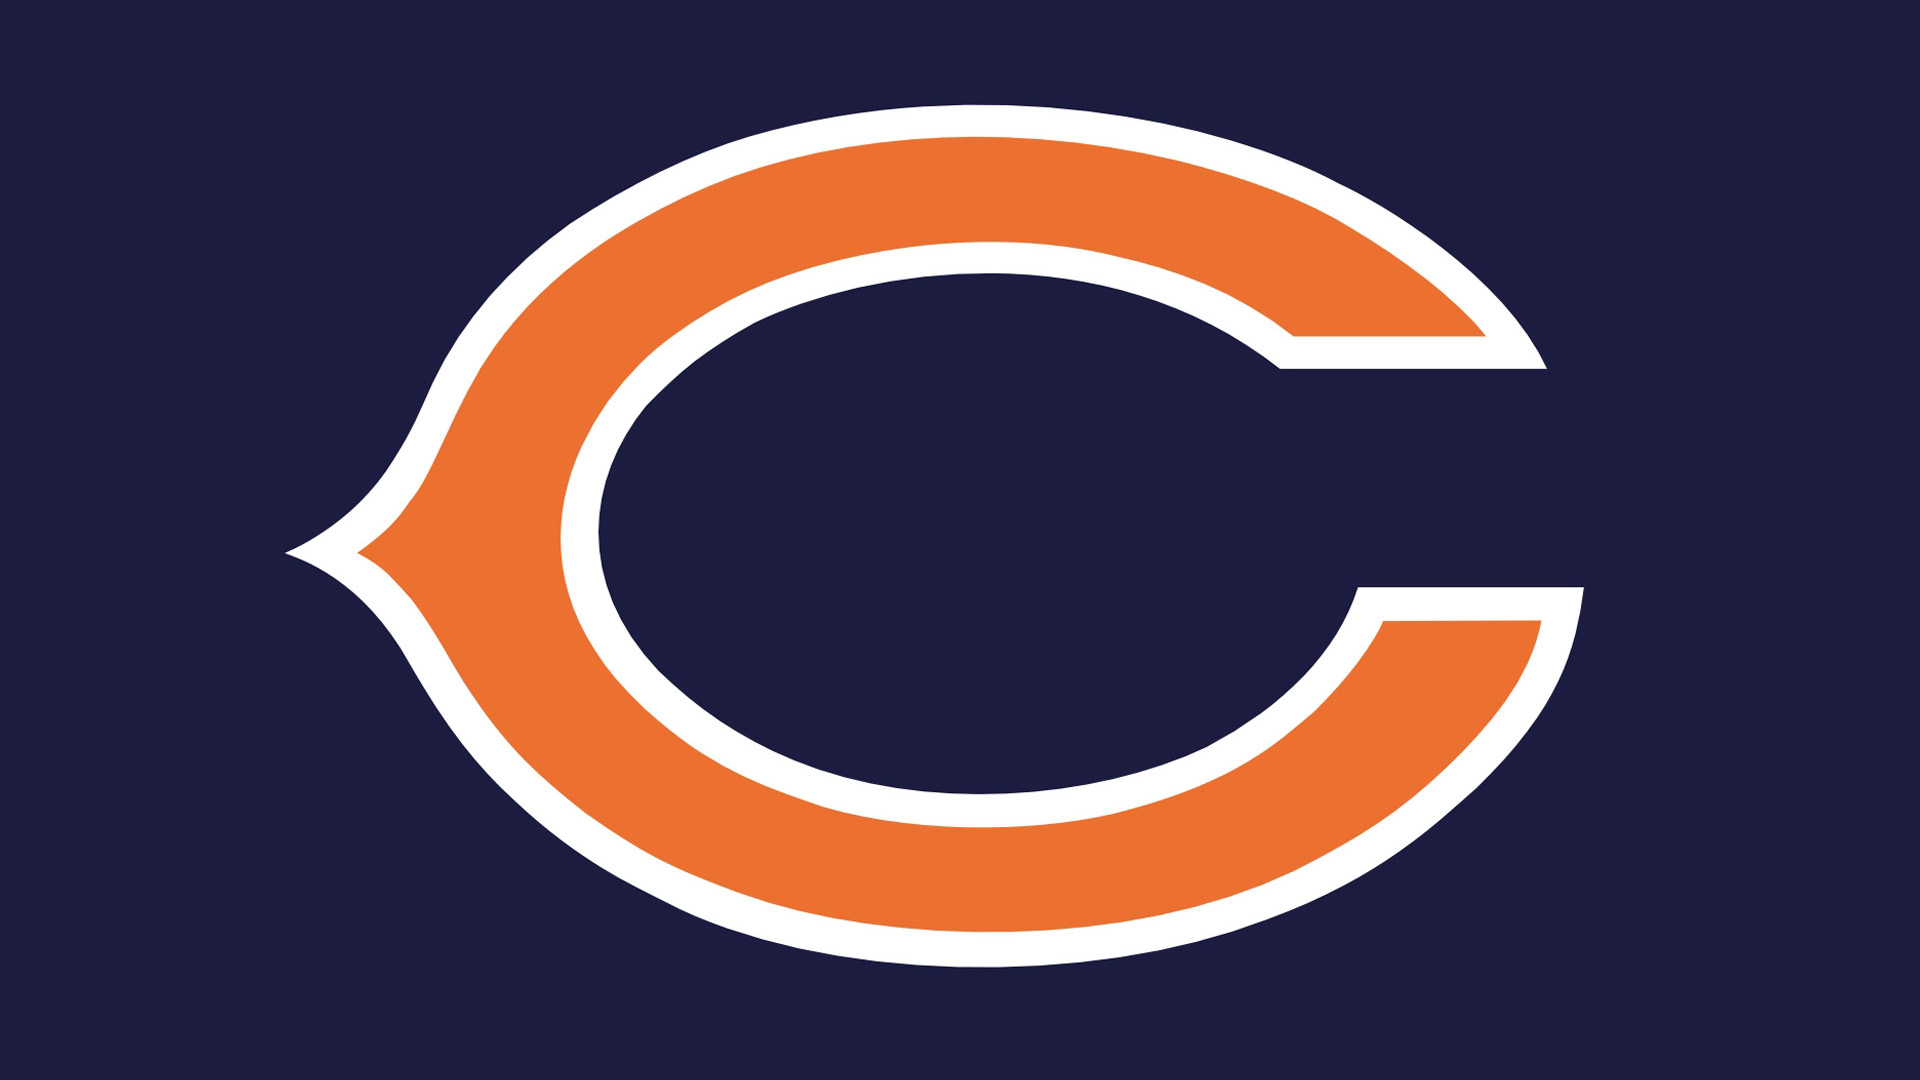 chicago paper bears multimedia software 1920x1080 1920x1080